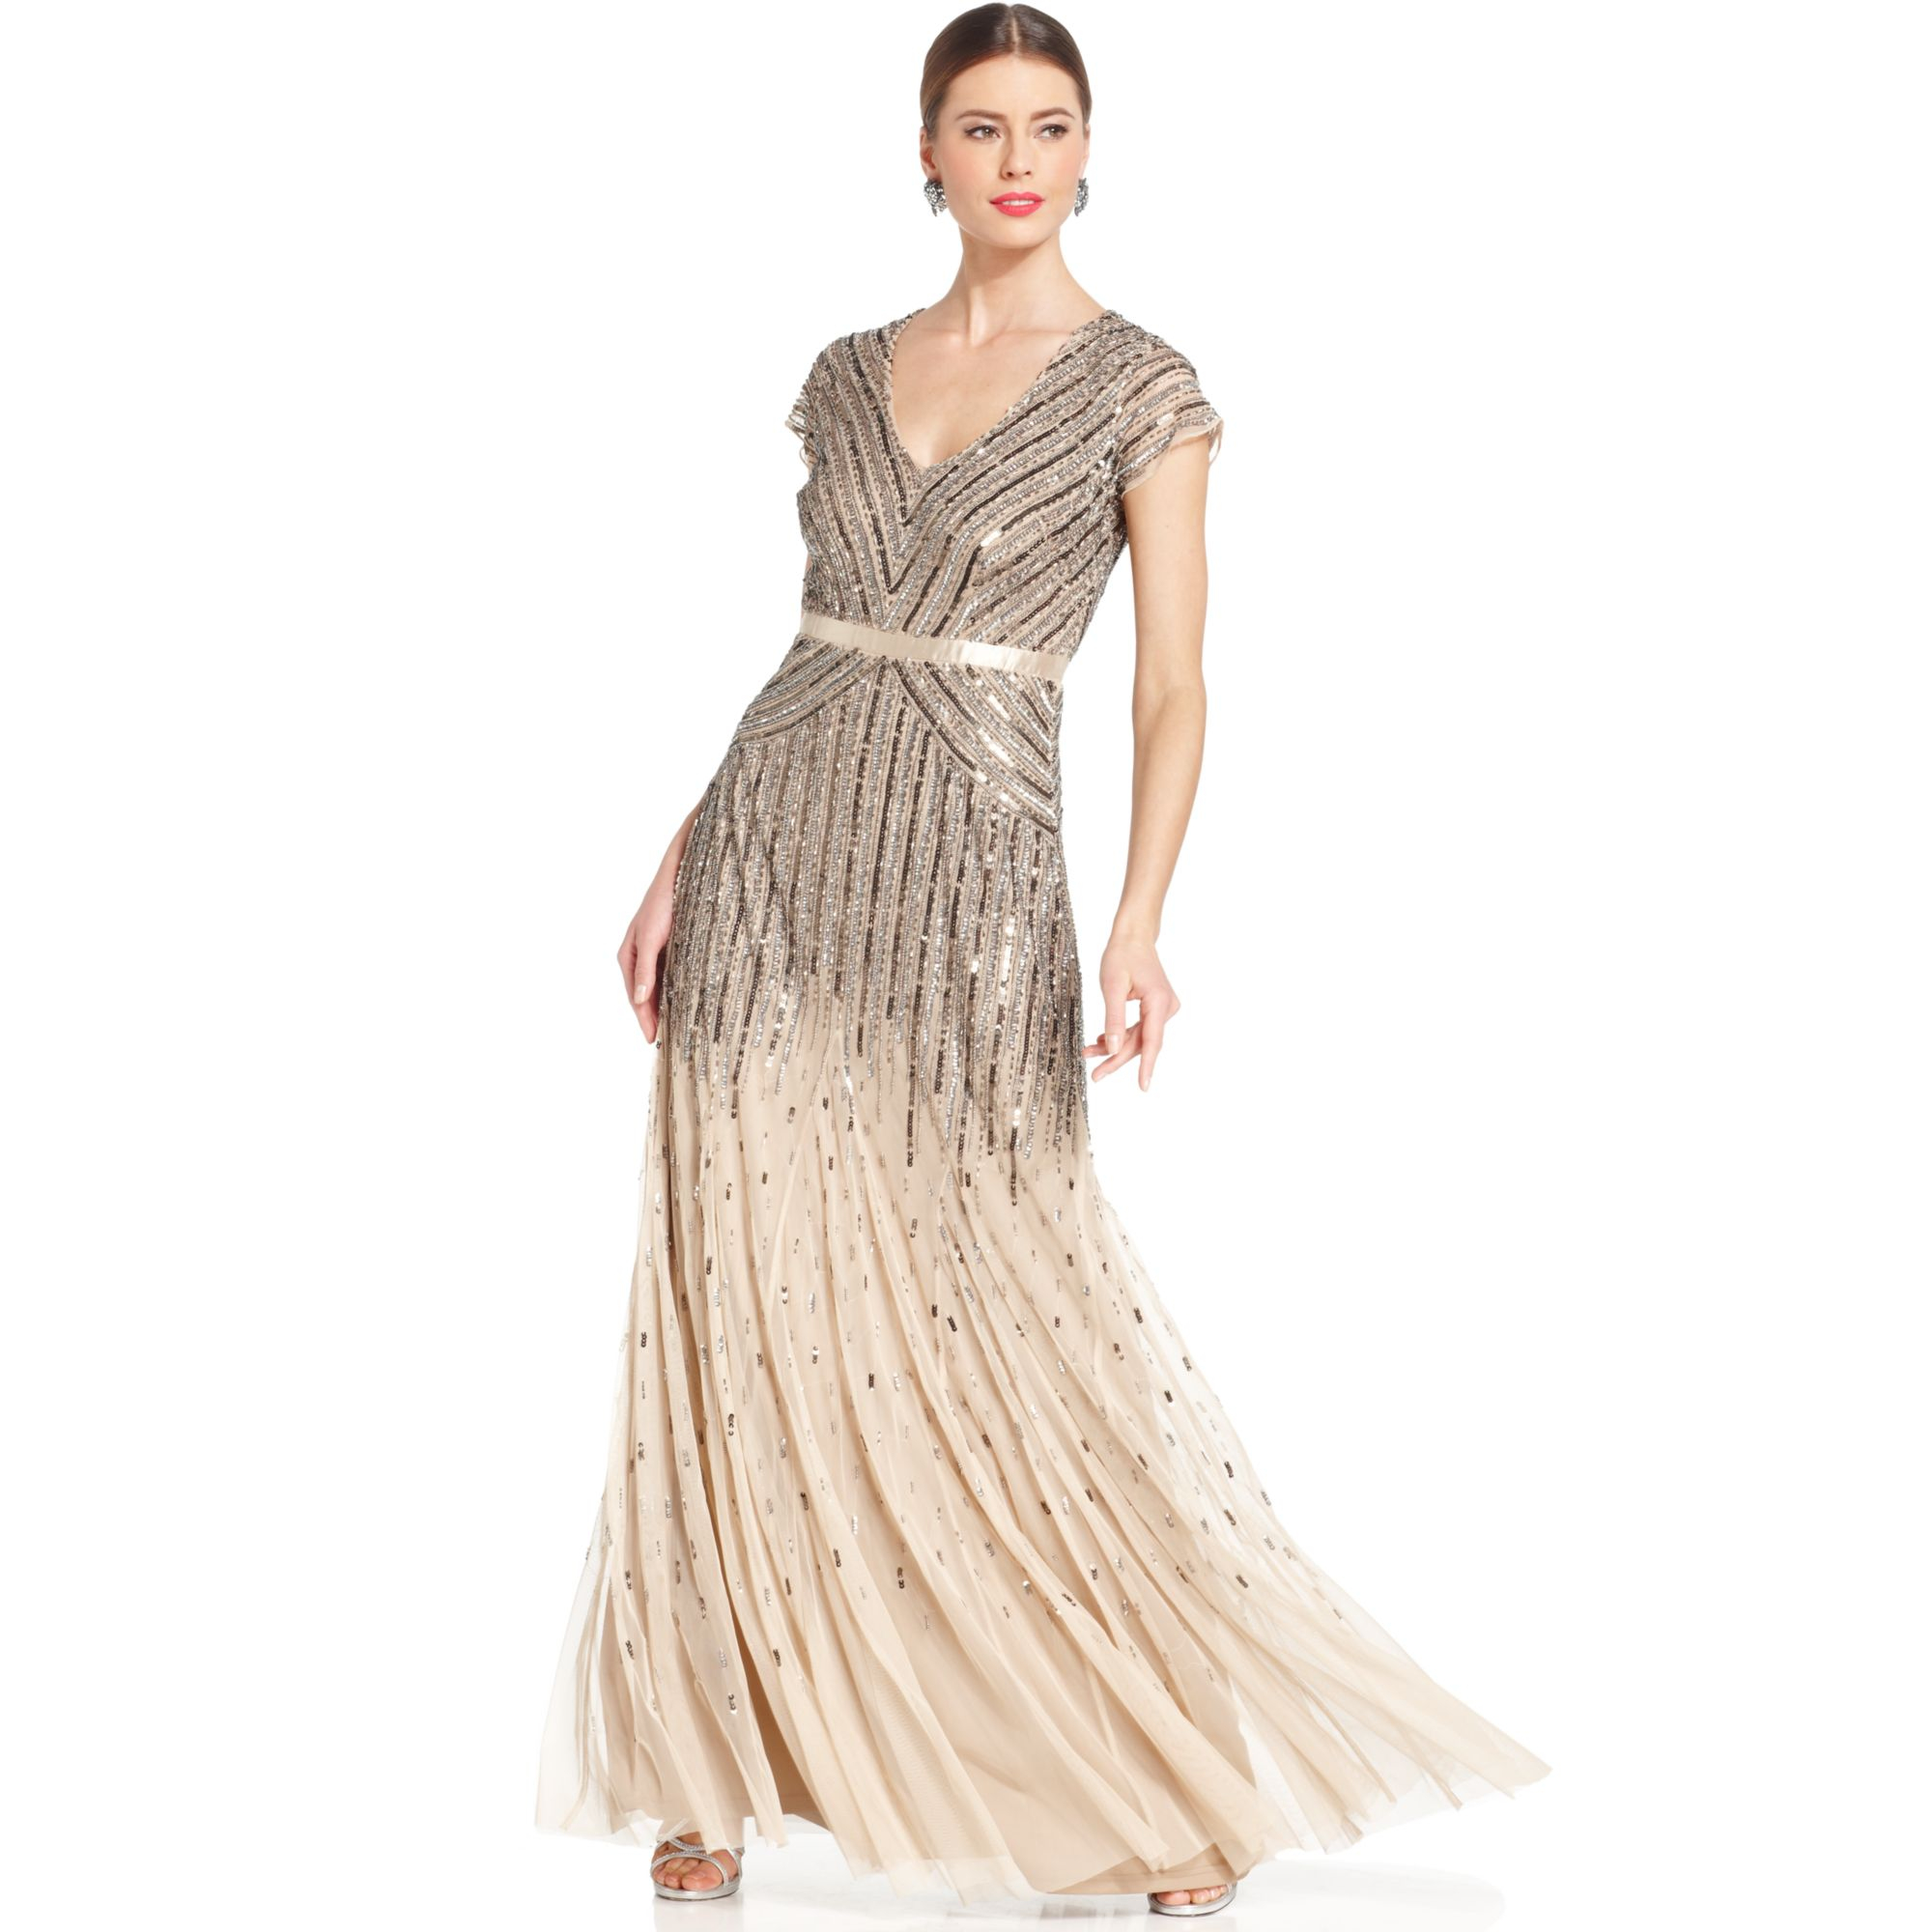 Nature Dress: Adrianna Papell Capsleeve Beaded Sequined Gown In Nude